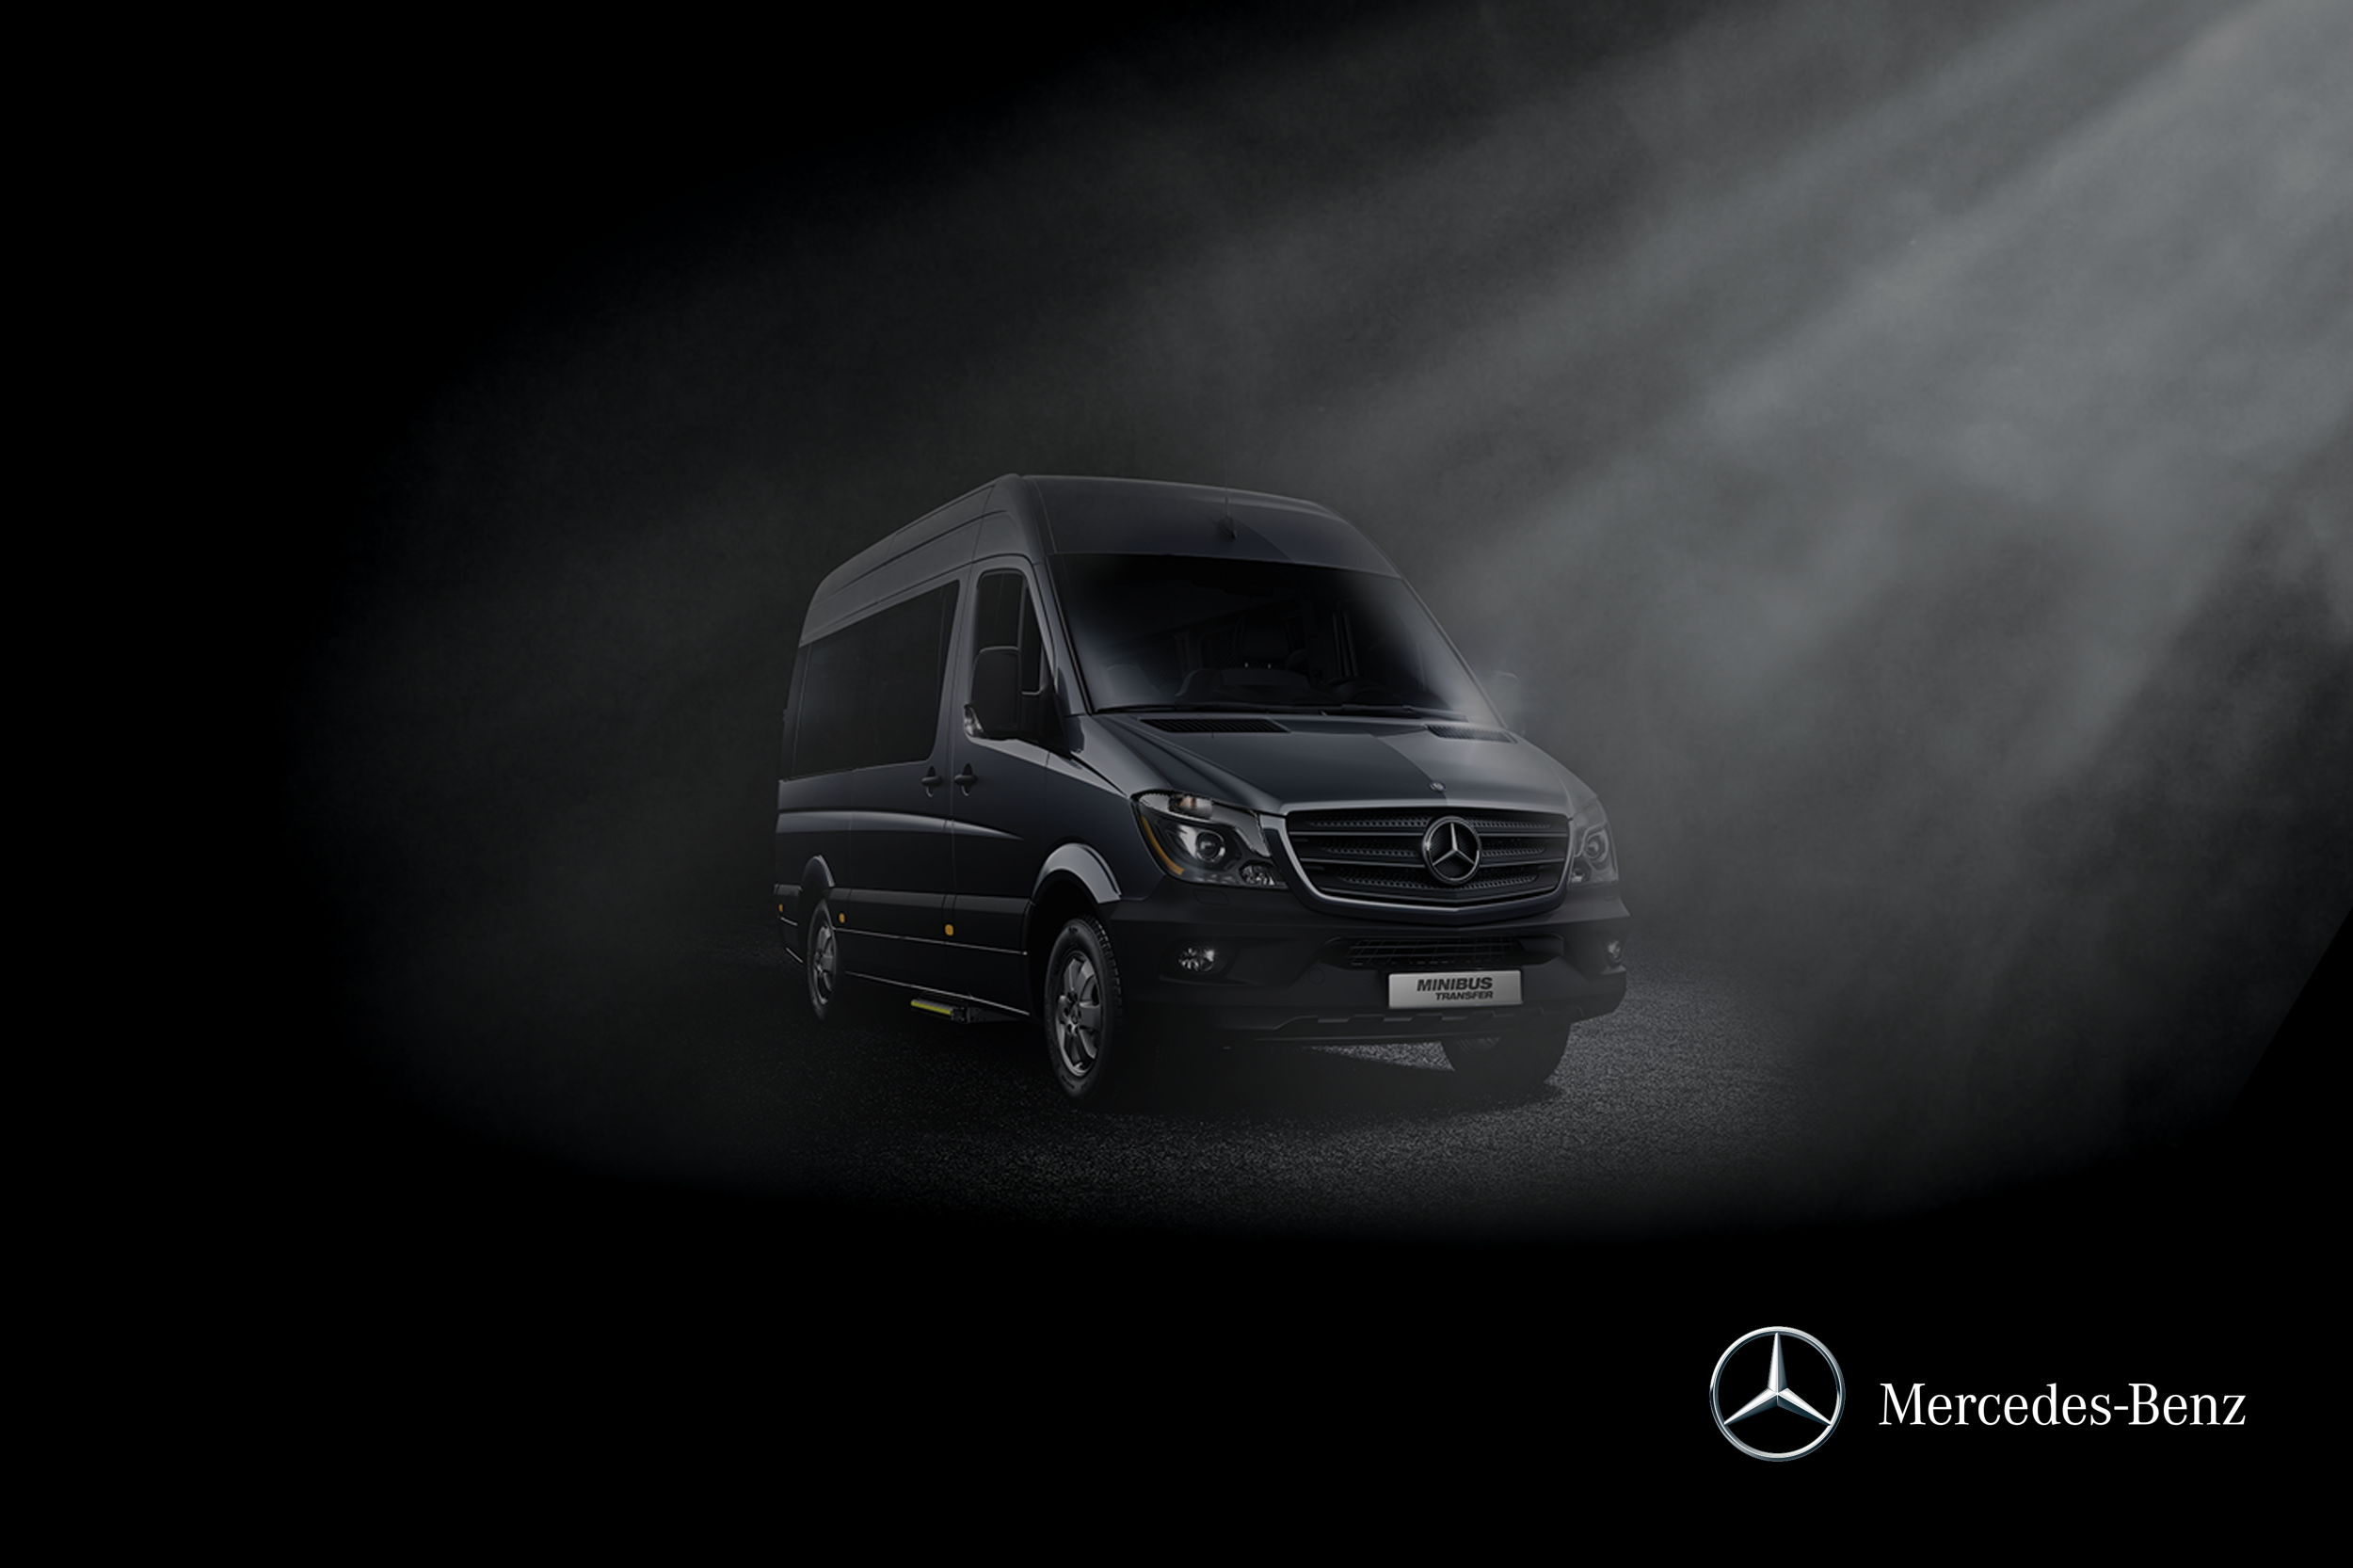 of benz photos van minibus cars photo sprinter mercedesbenz file cdi topworldauto mercedes